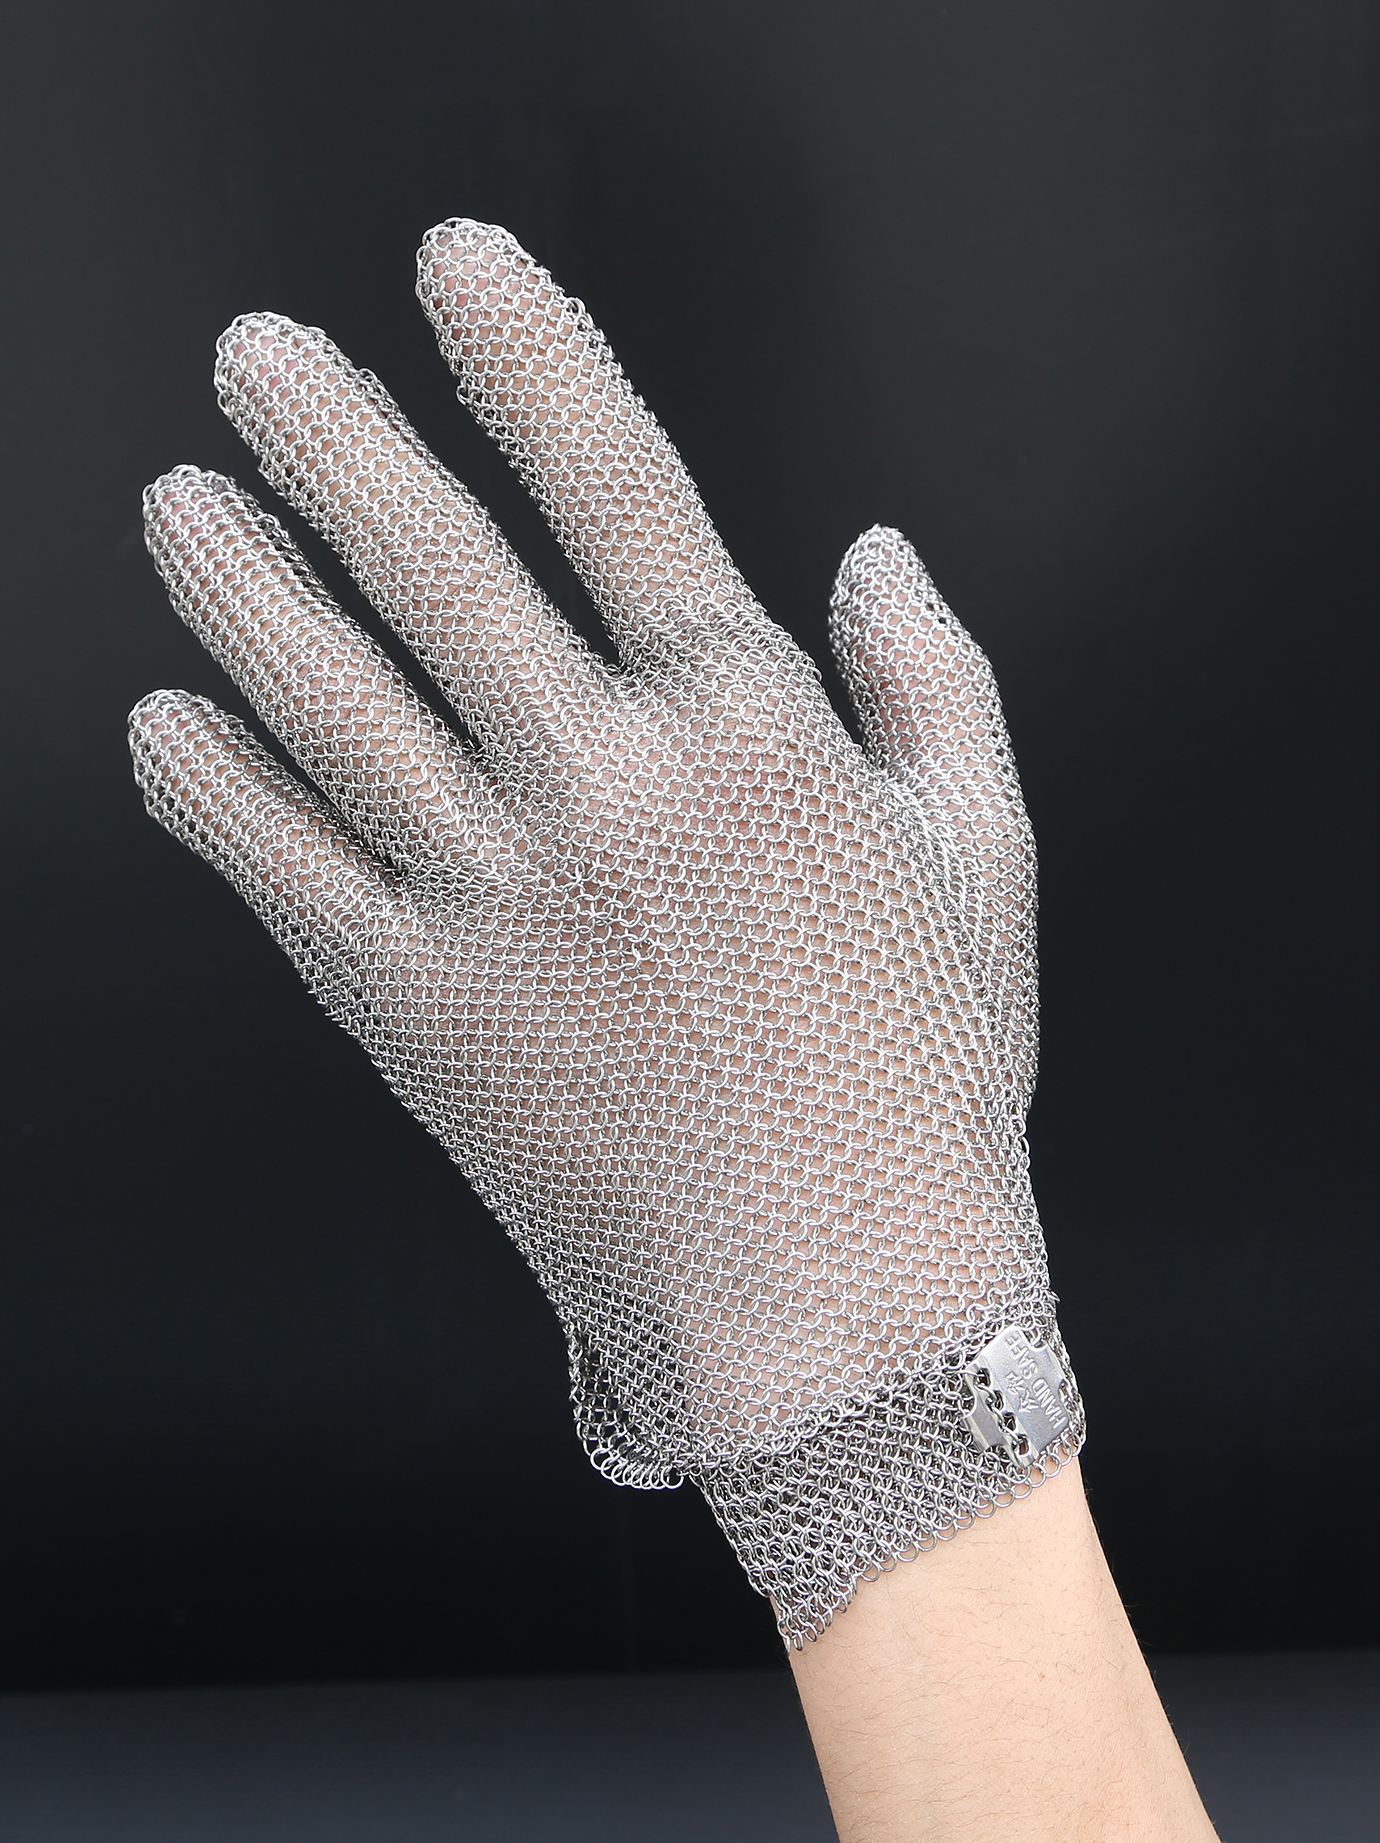 Cut Resistant Gloves--hand protection against cuts, slashes and punchers